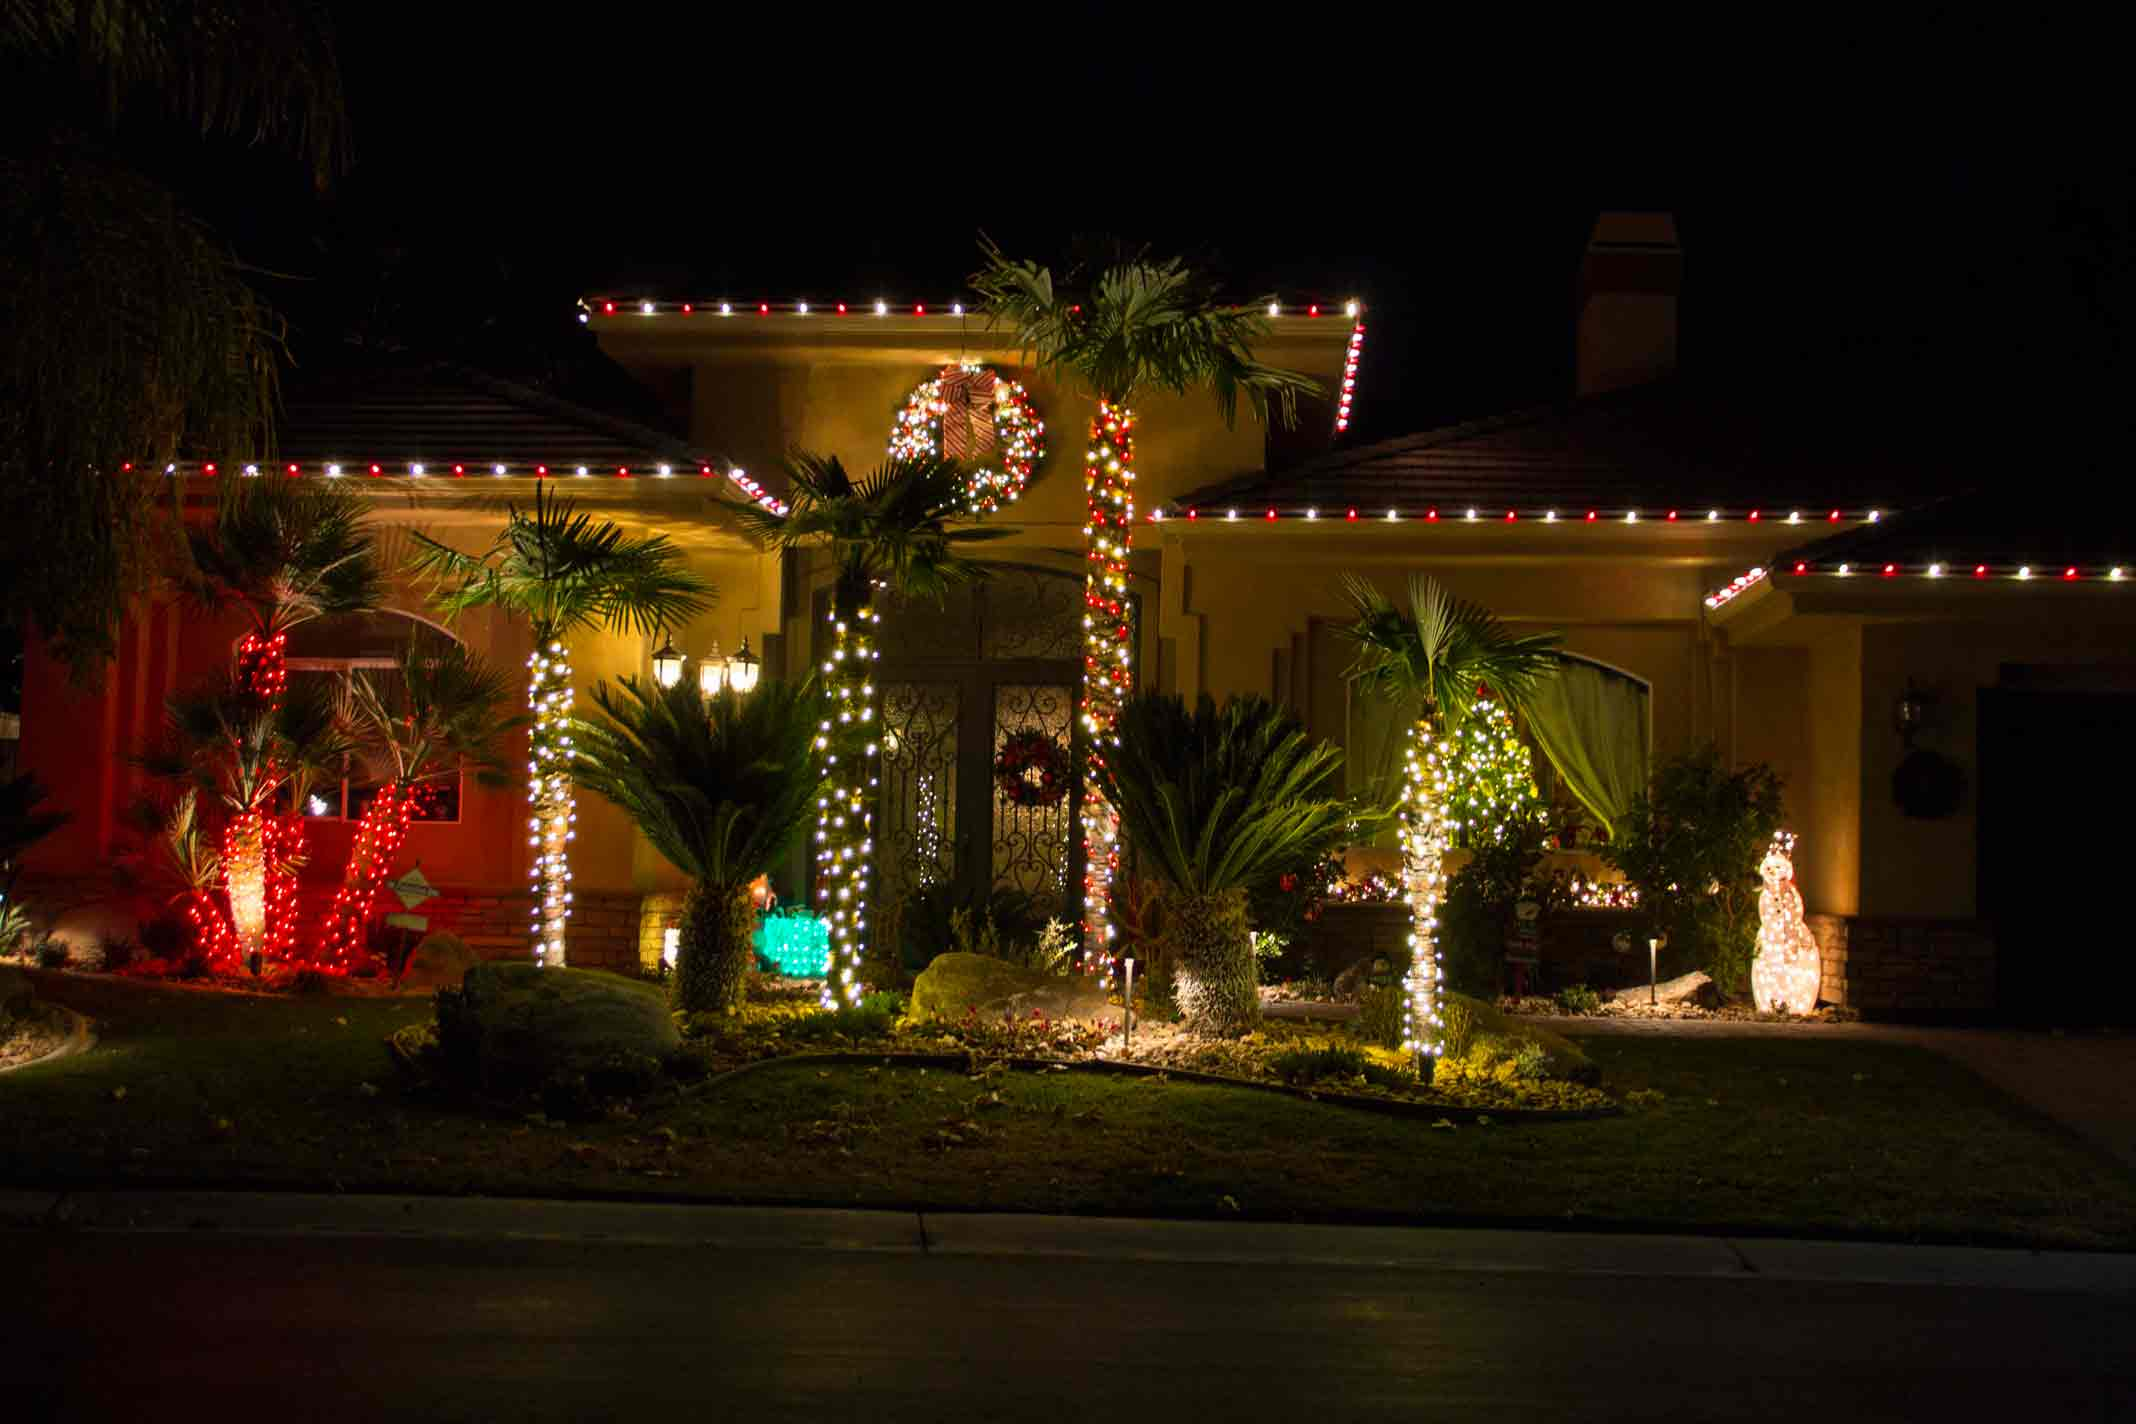 welcome to holiday decorations - Las Vegas Christmas Decorations